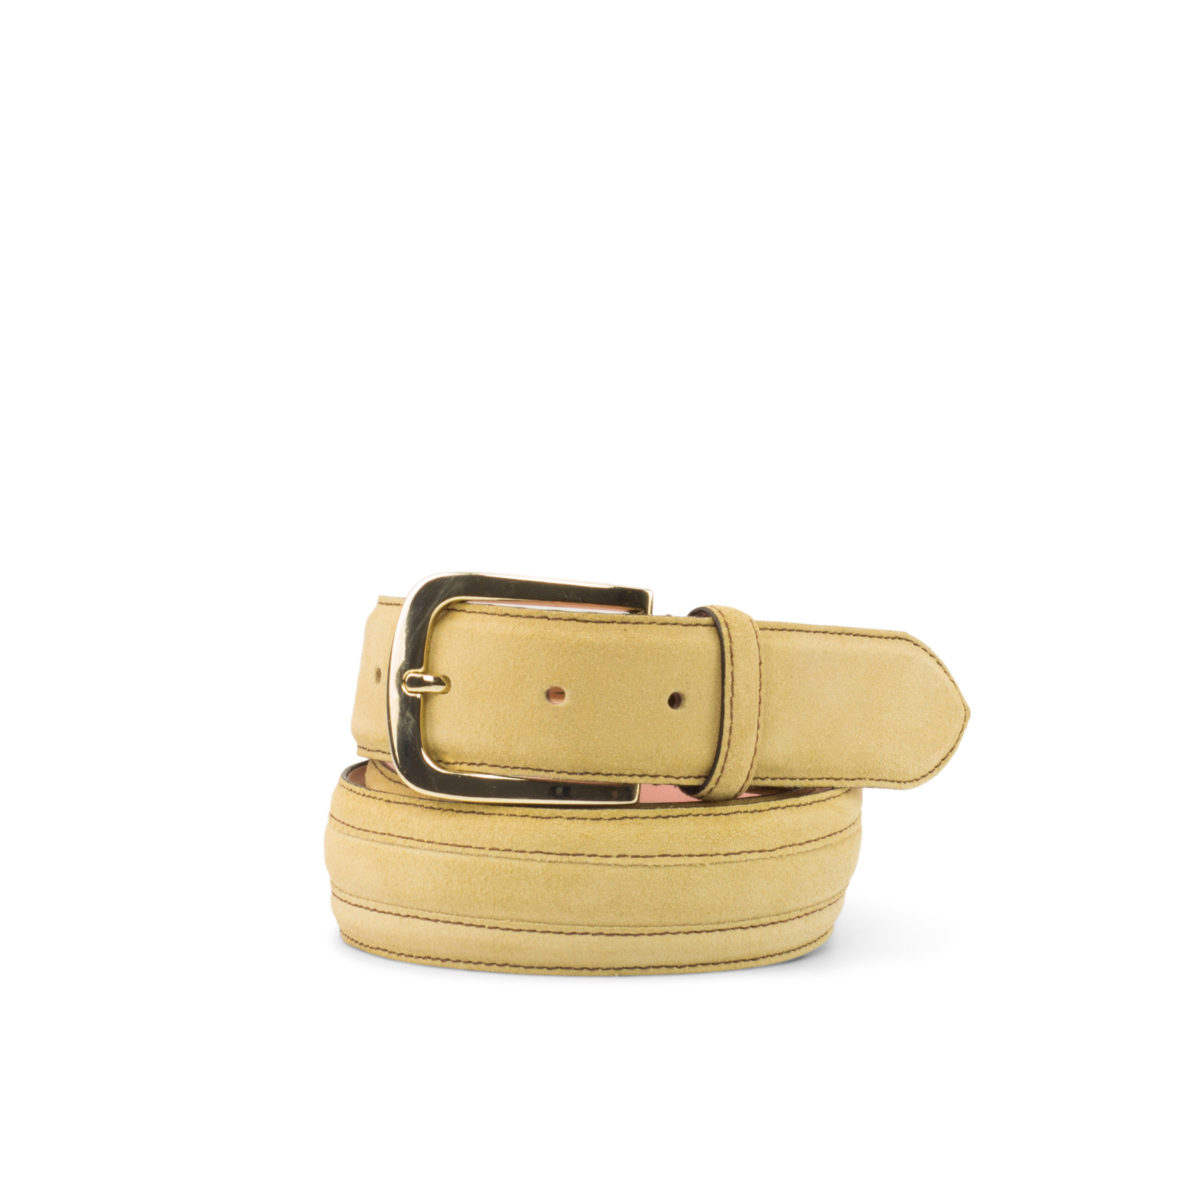 Side view of model Oaklawn, sand lux suede, pale rose nubuck, gold buckle Golf BespokeShoes